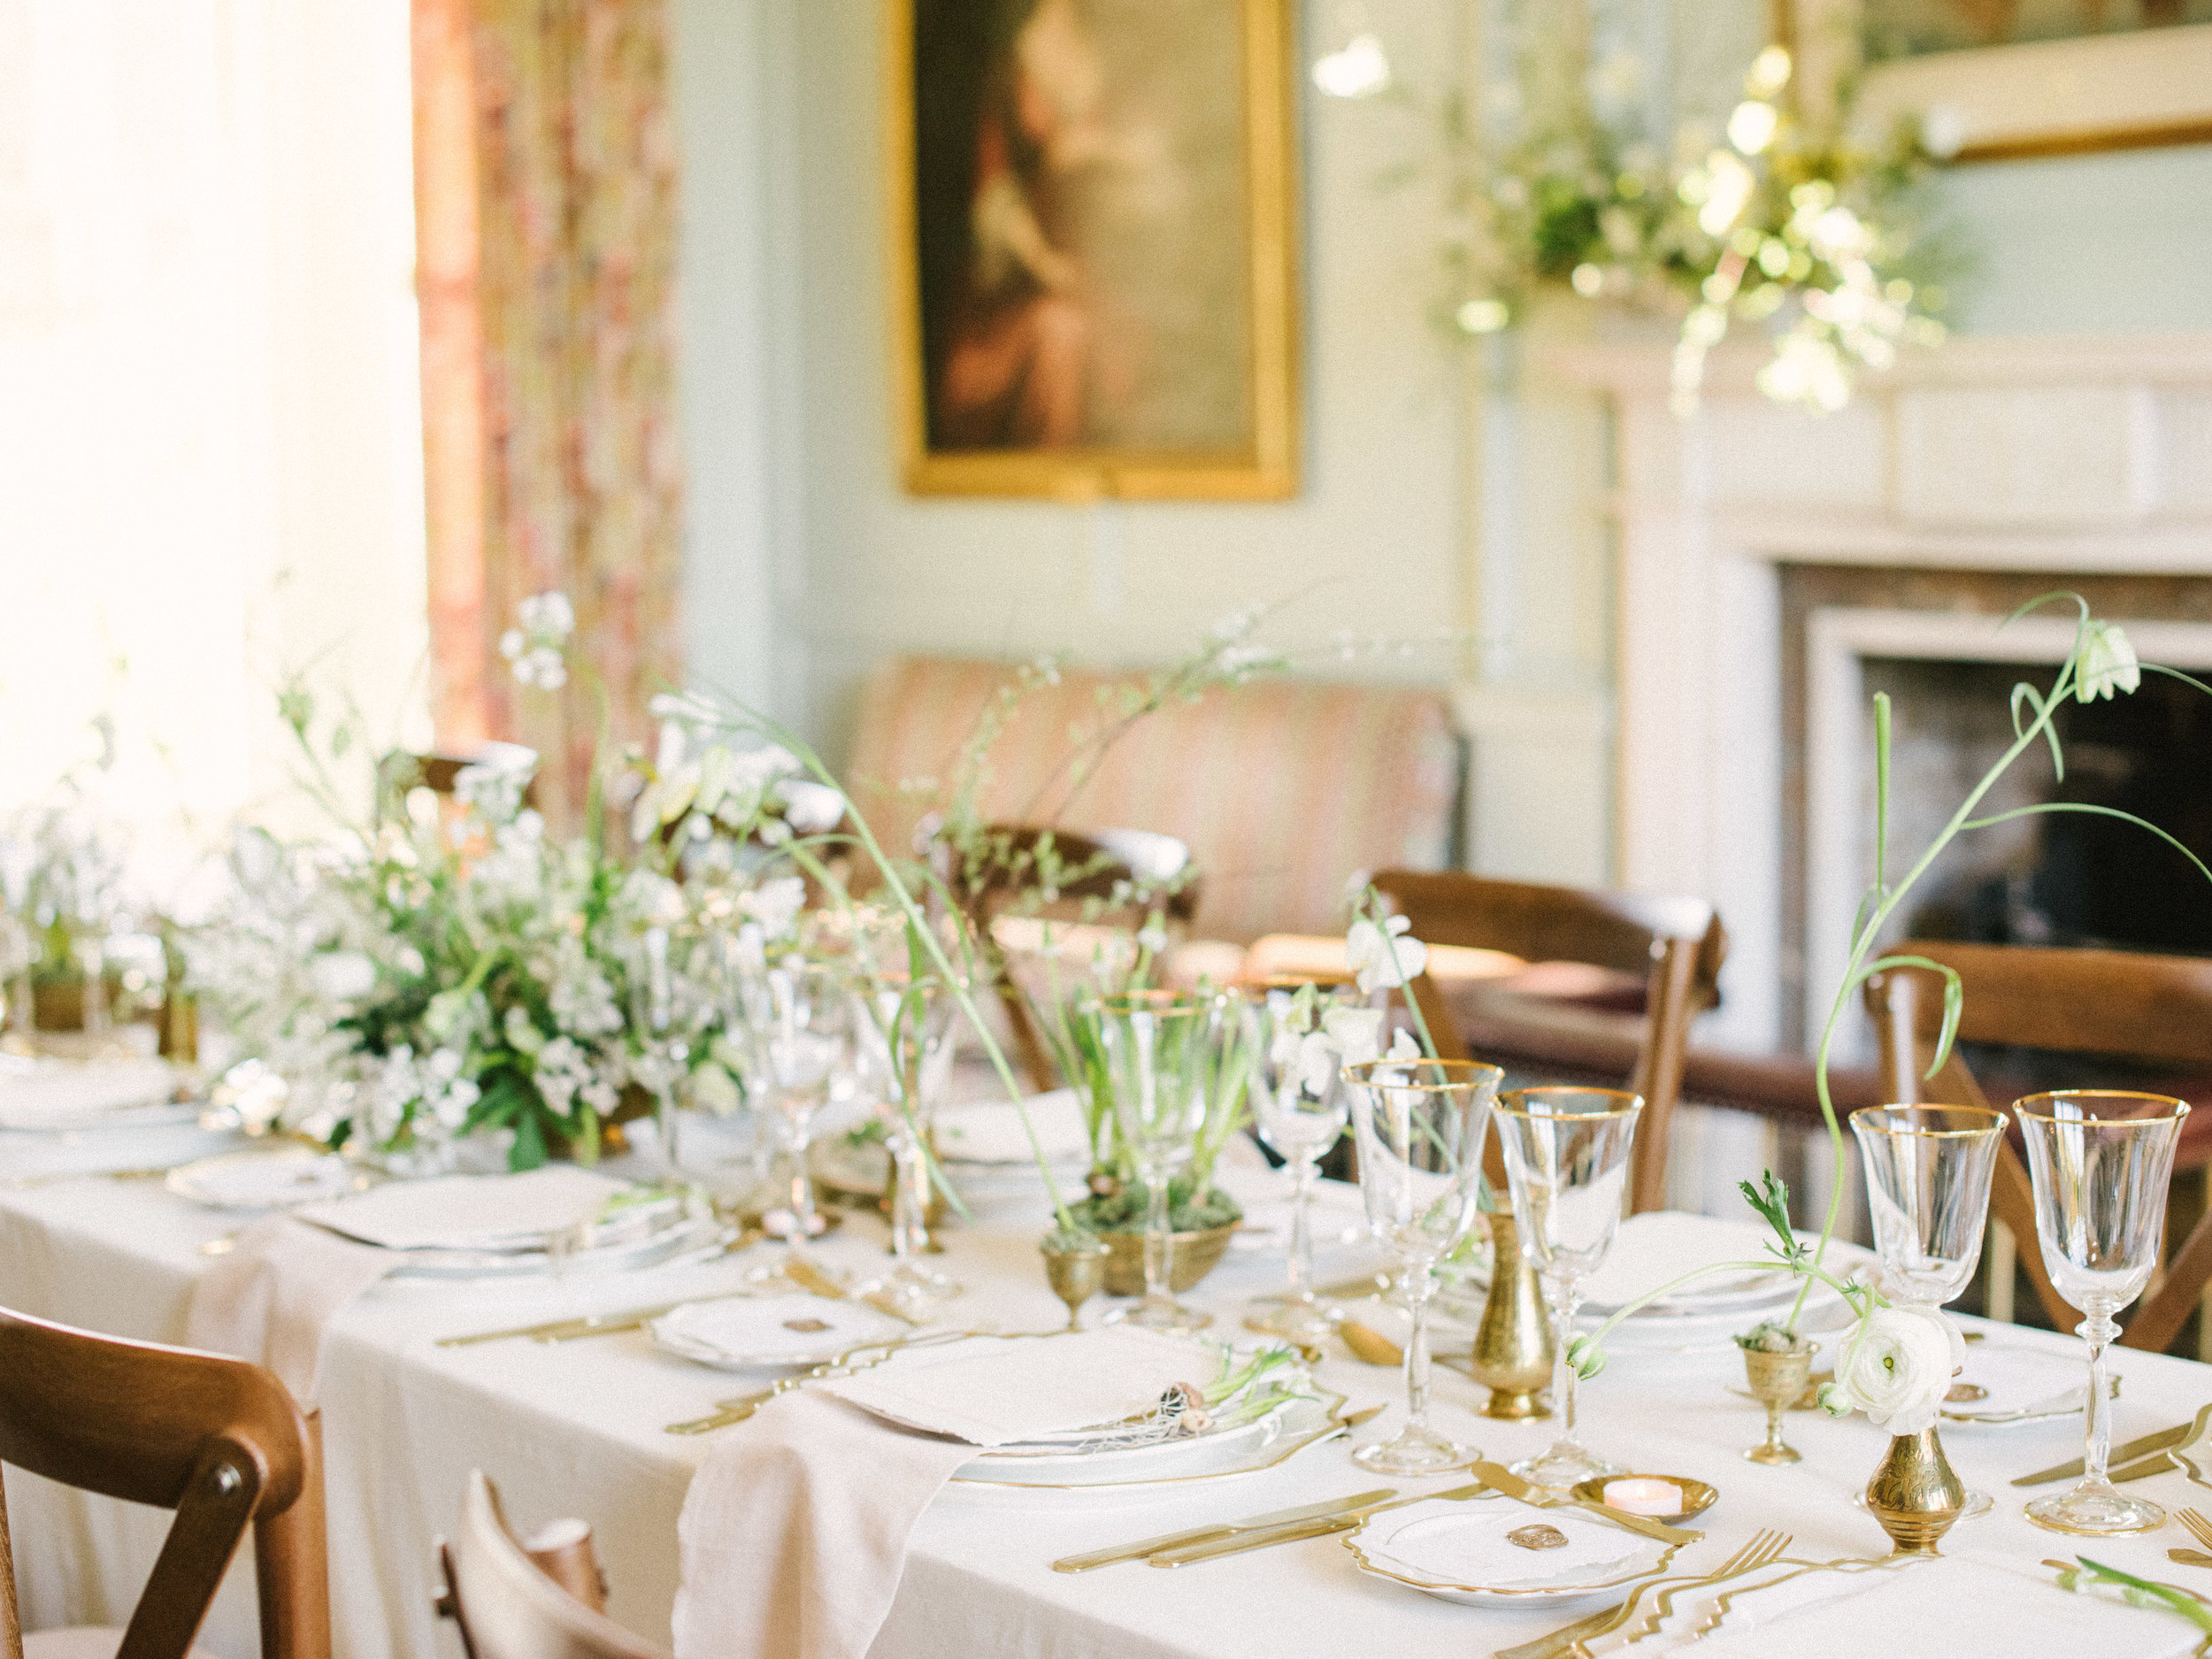 The Timeless Stylist-Elegant Wedding and Event Styling-Spring Design Table Decor-Brass Vases